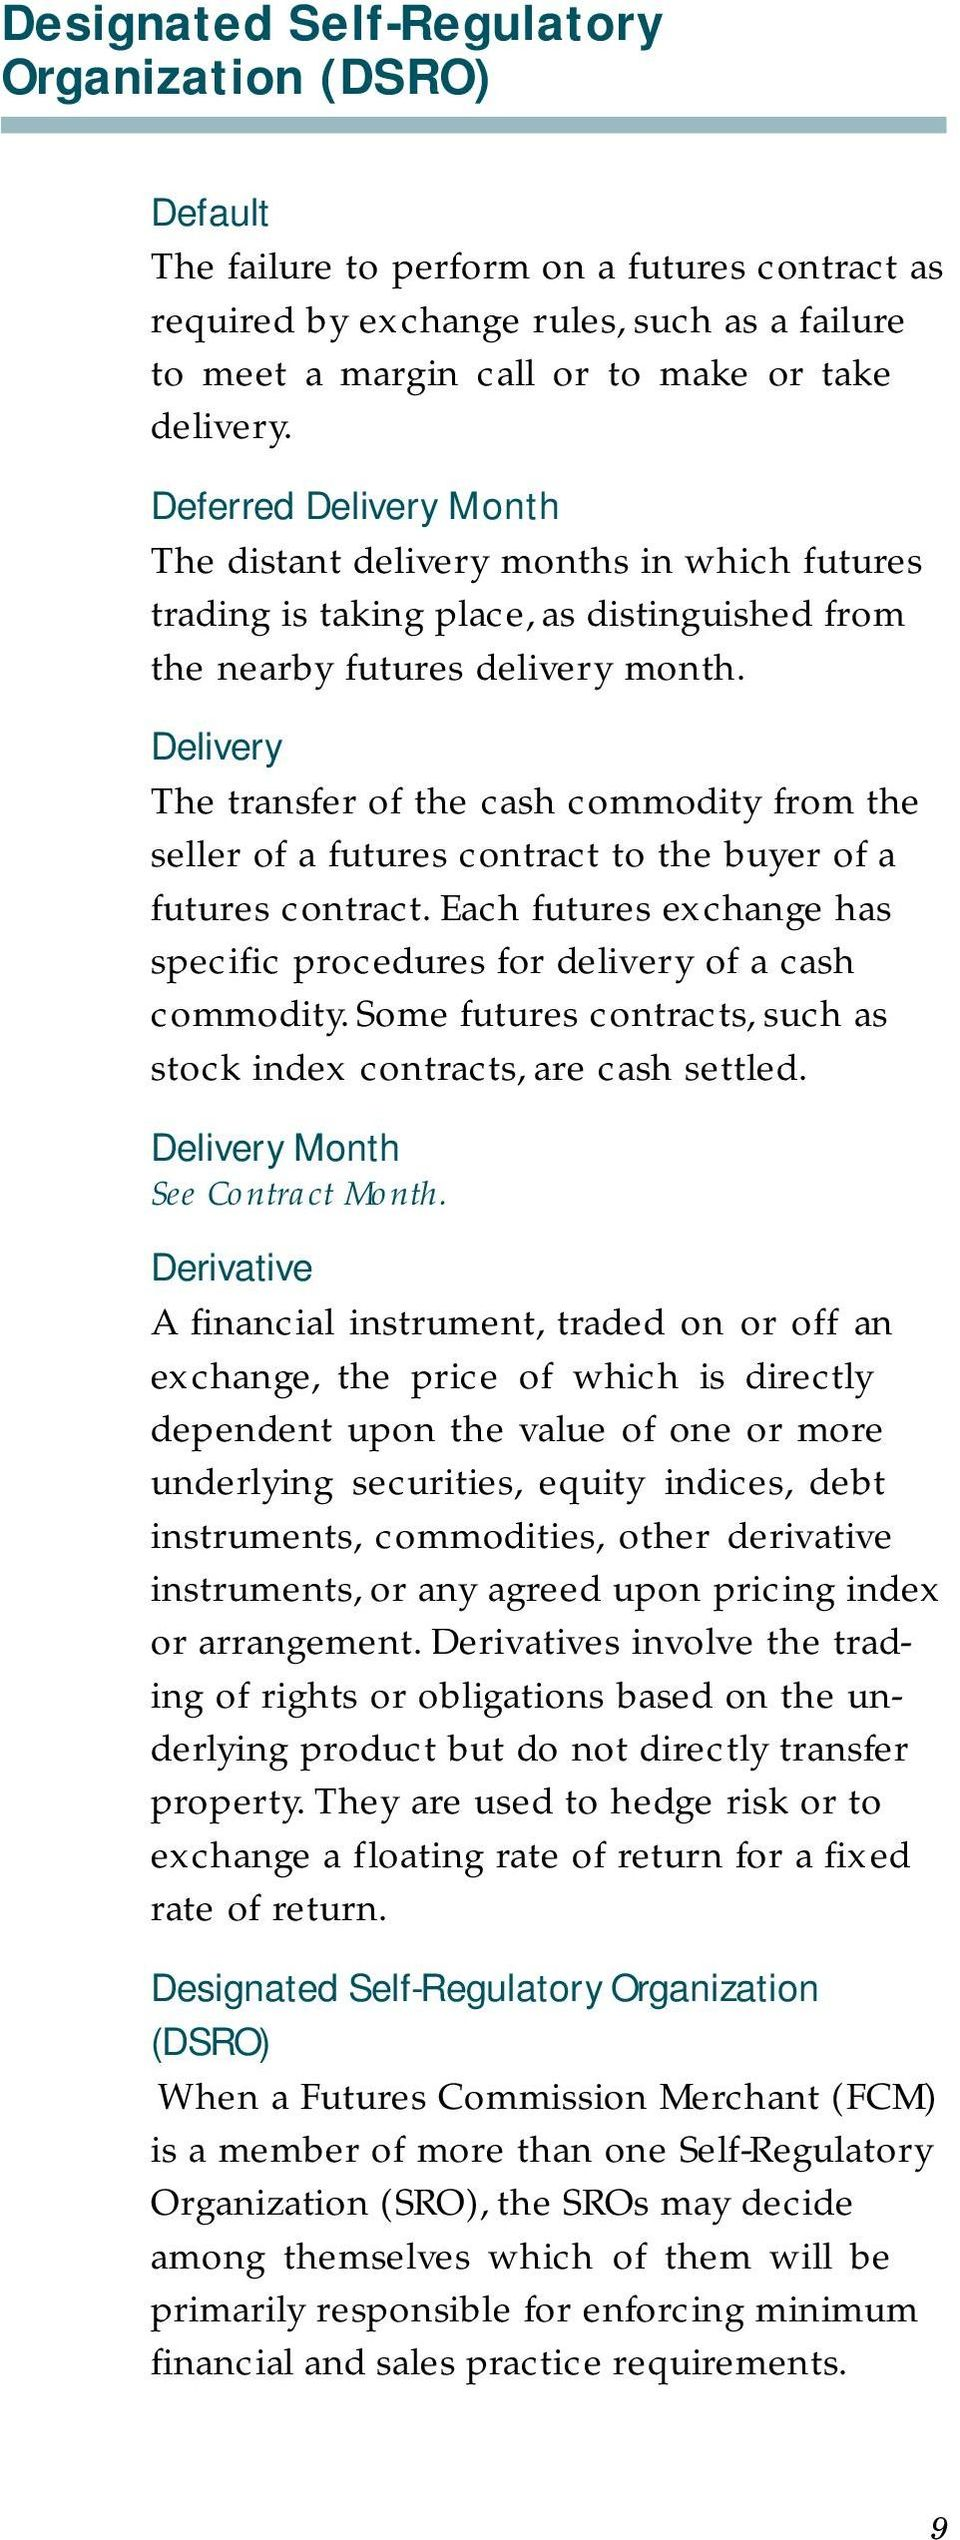 Delivery The transfer of the cash commodity from the seller of a futures contract to the buyer of a futures contract. Each futures exchange has specific procedures for delivery of a cash commodity.